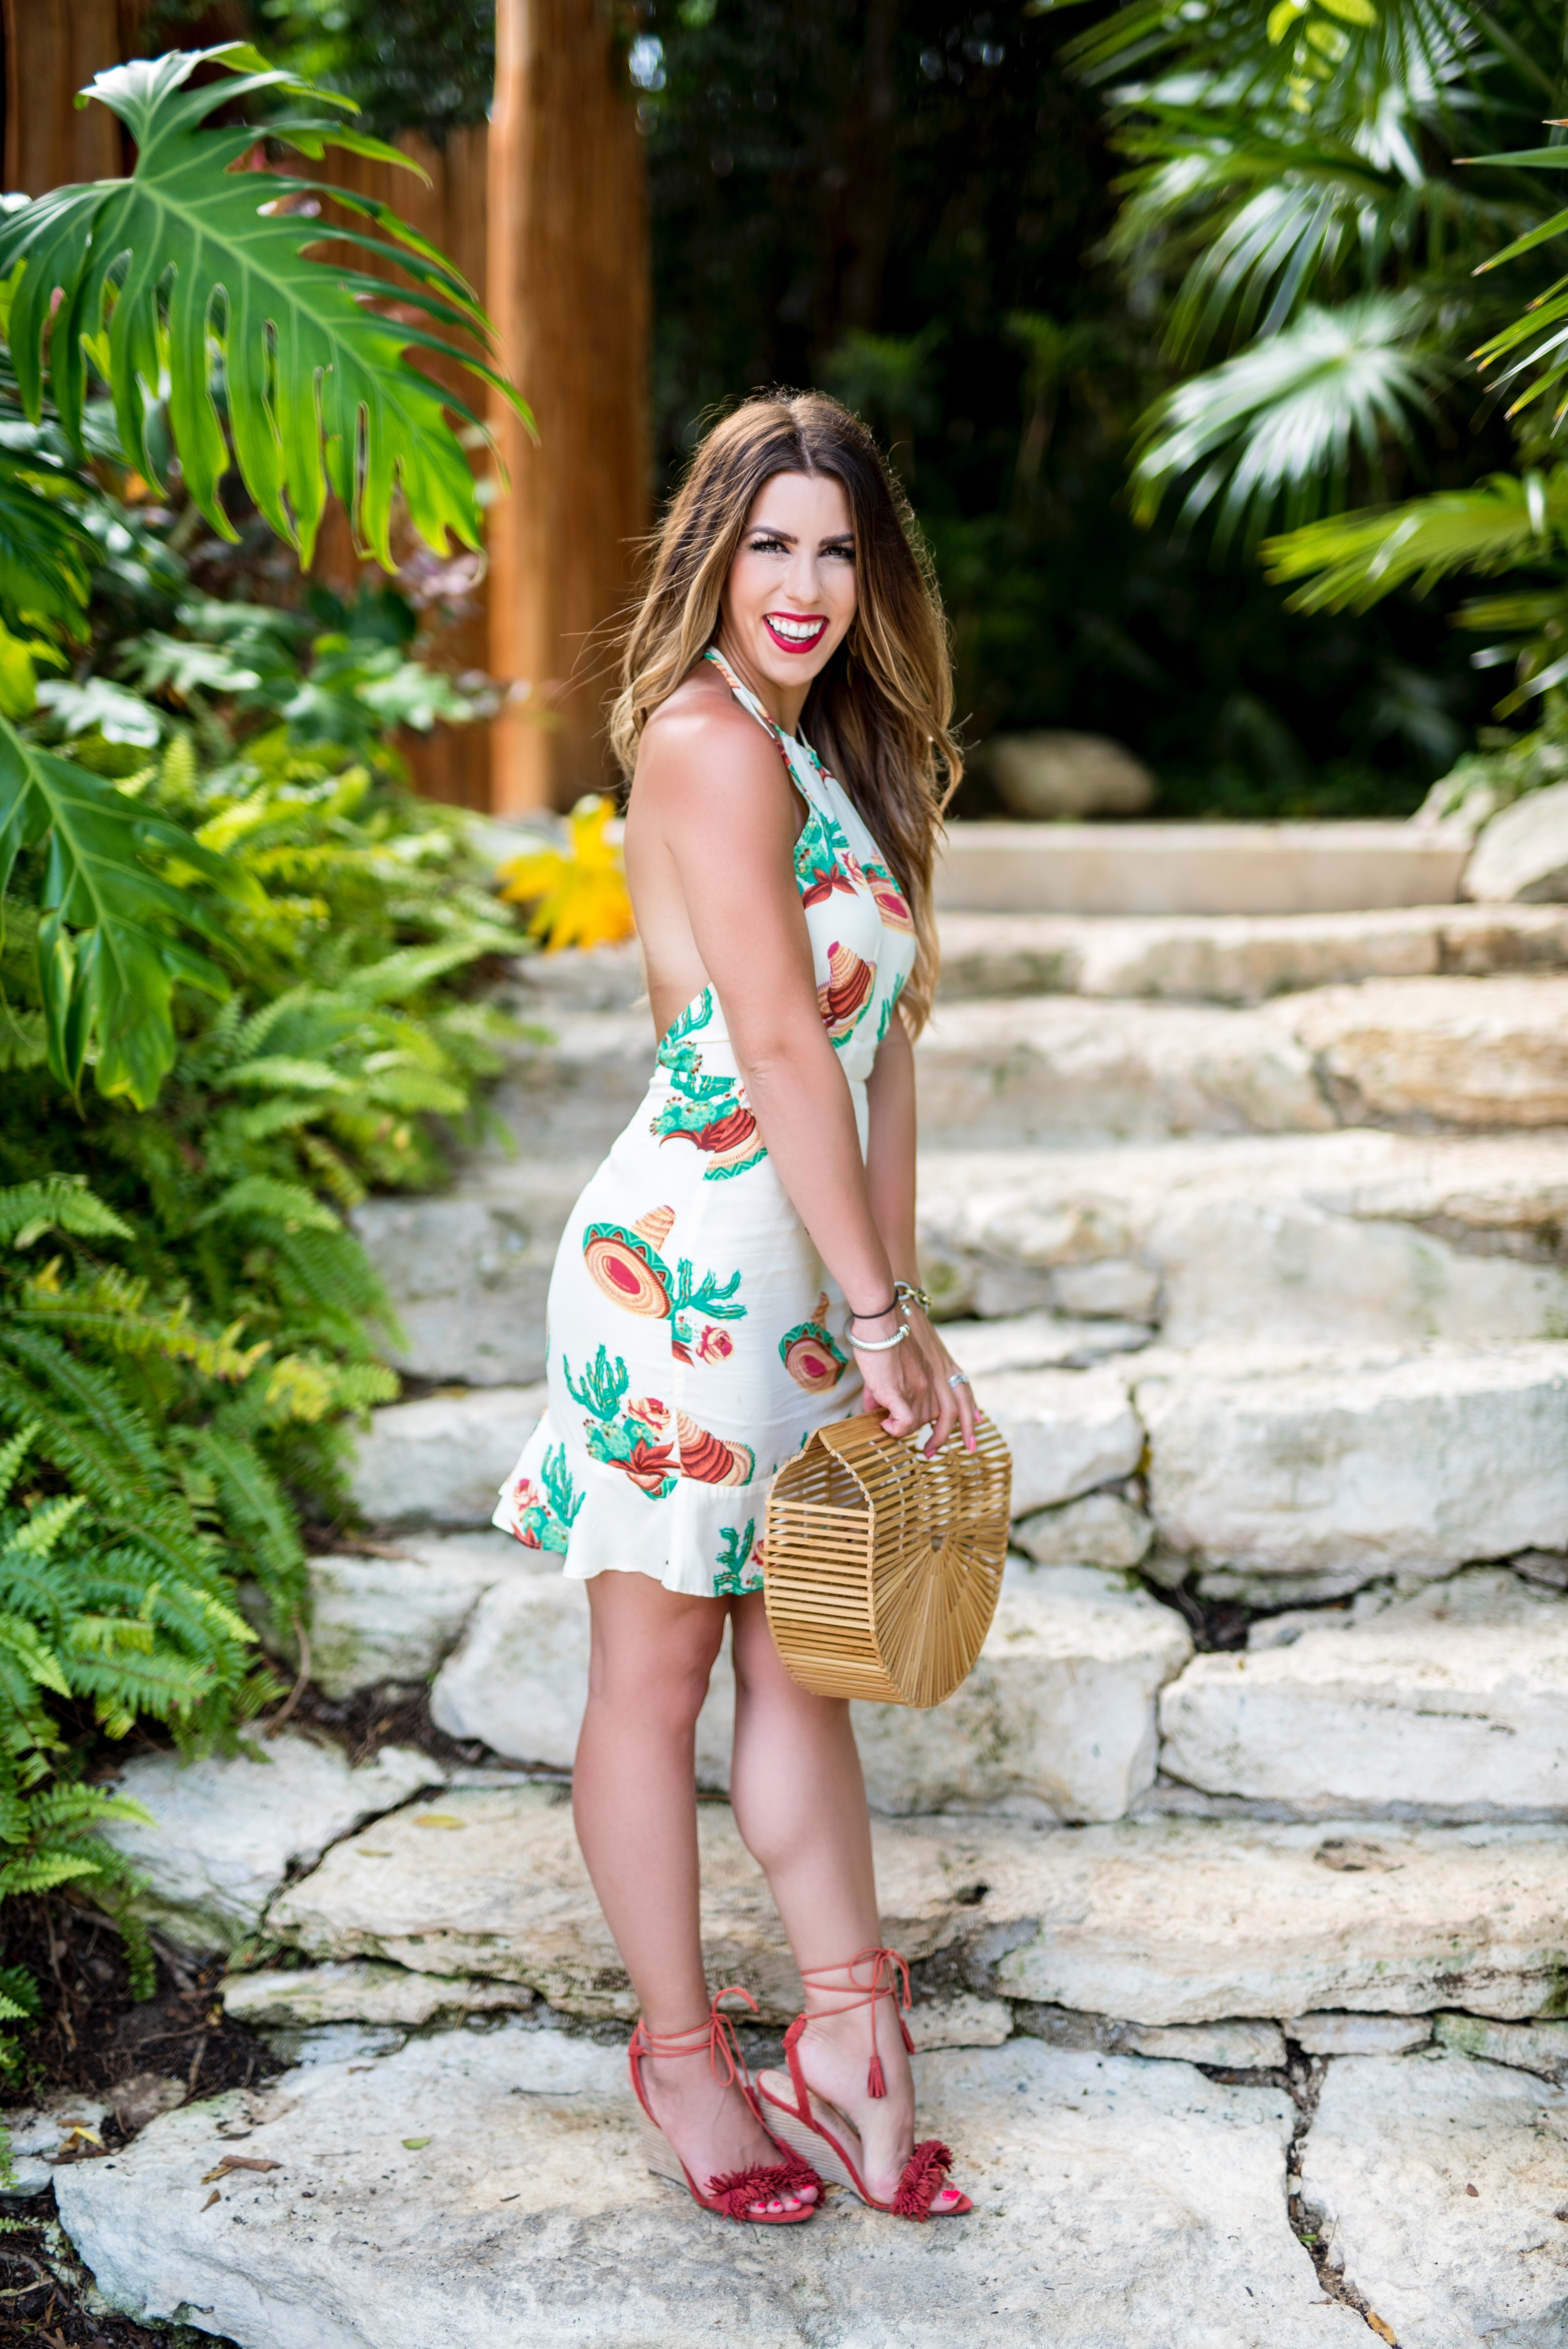 sombreros and cacti cactus dress cactus print the perfect dress to wear in mexico printed dress white dress in mexico cacti print cactus dress travel to mexico what to wear on vacation cult gaia purse vacation style vacation outfit inspo outfits for vacation travel to mexico